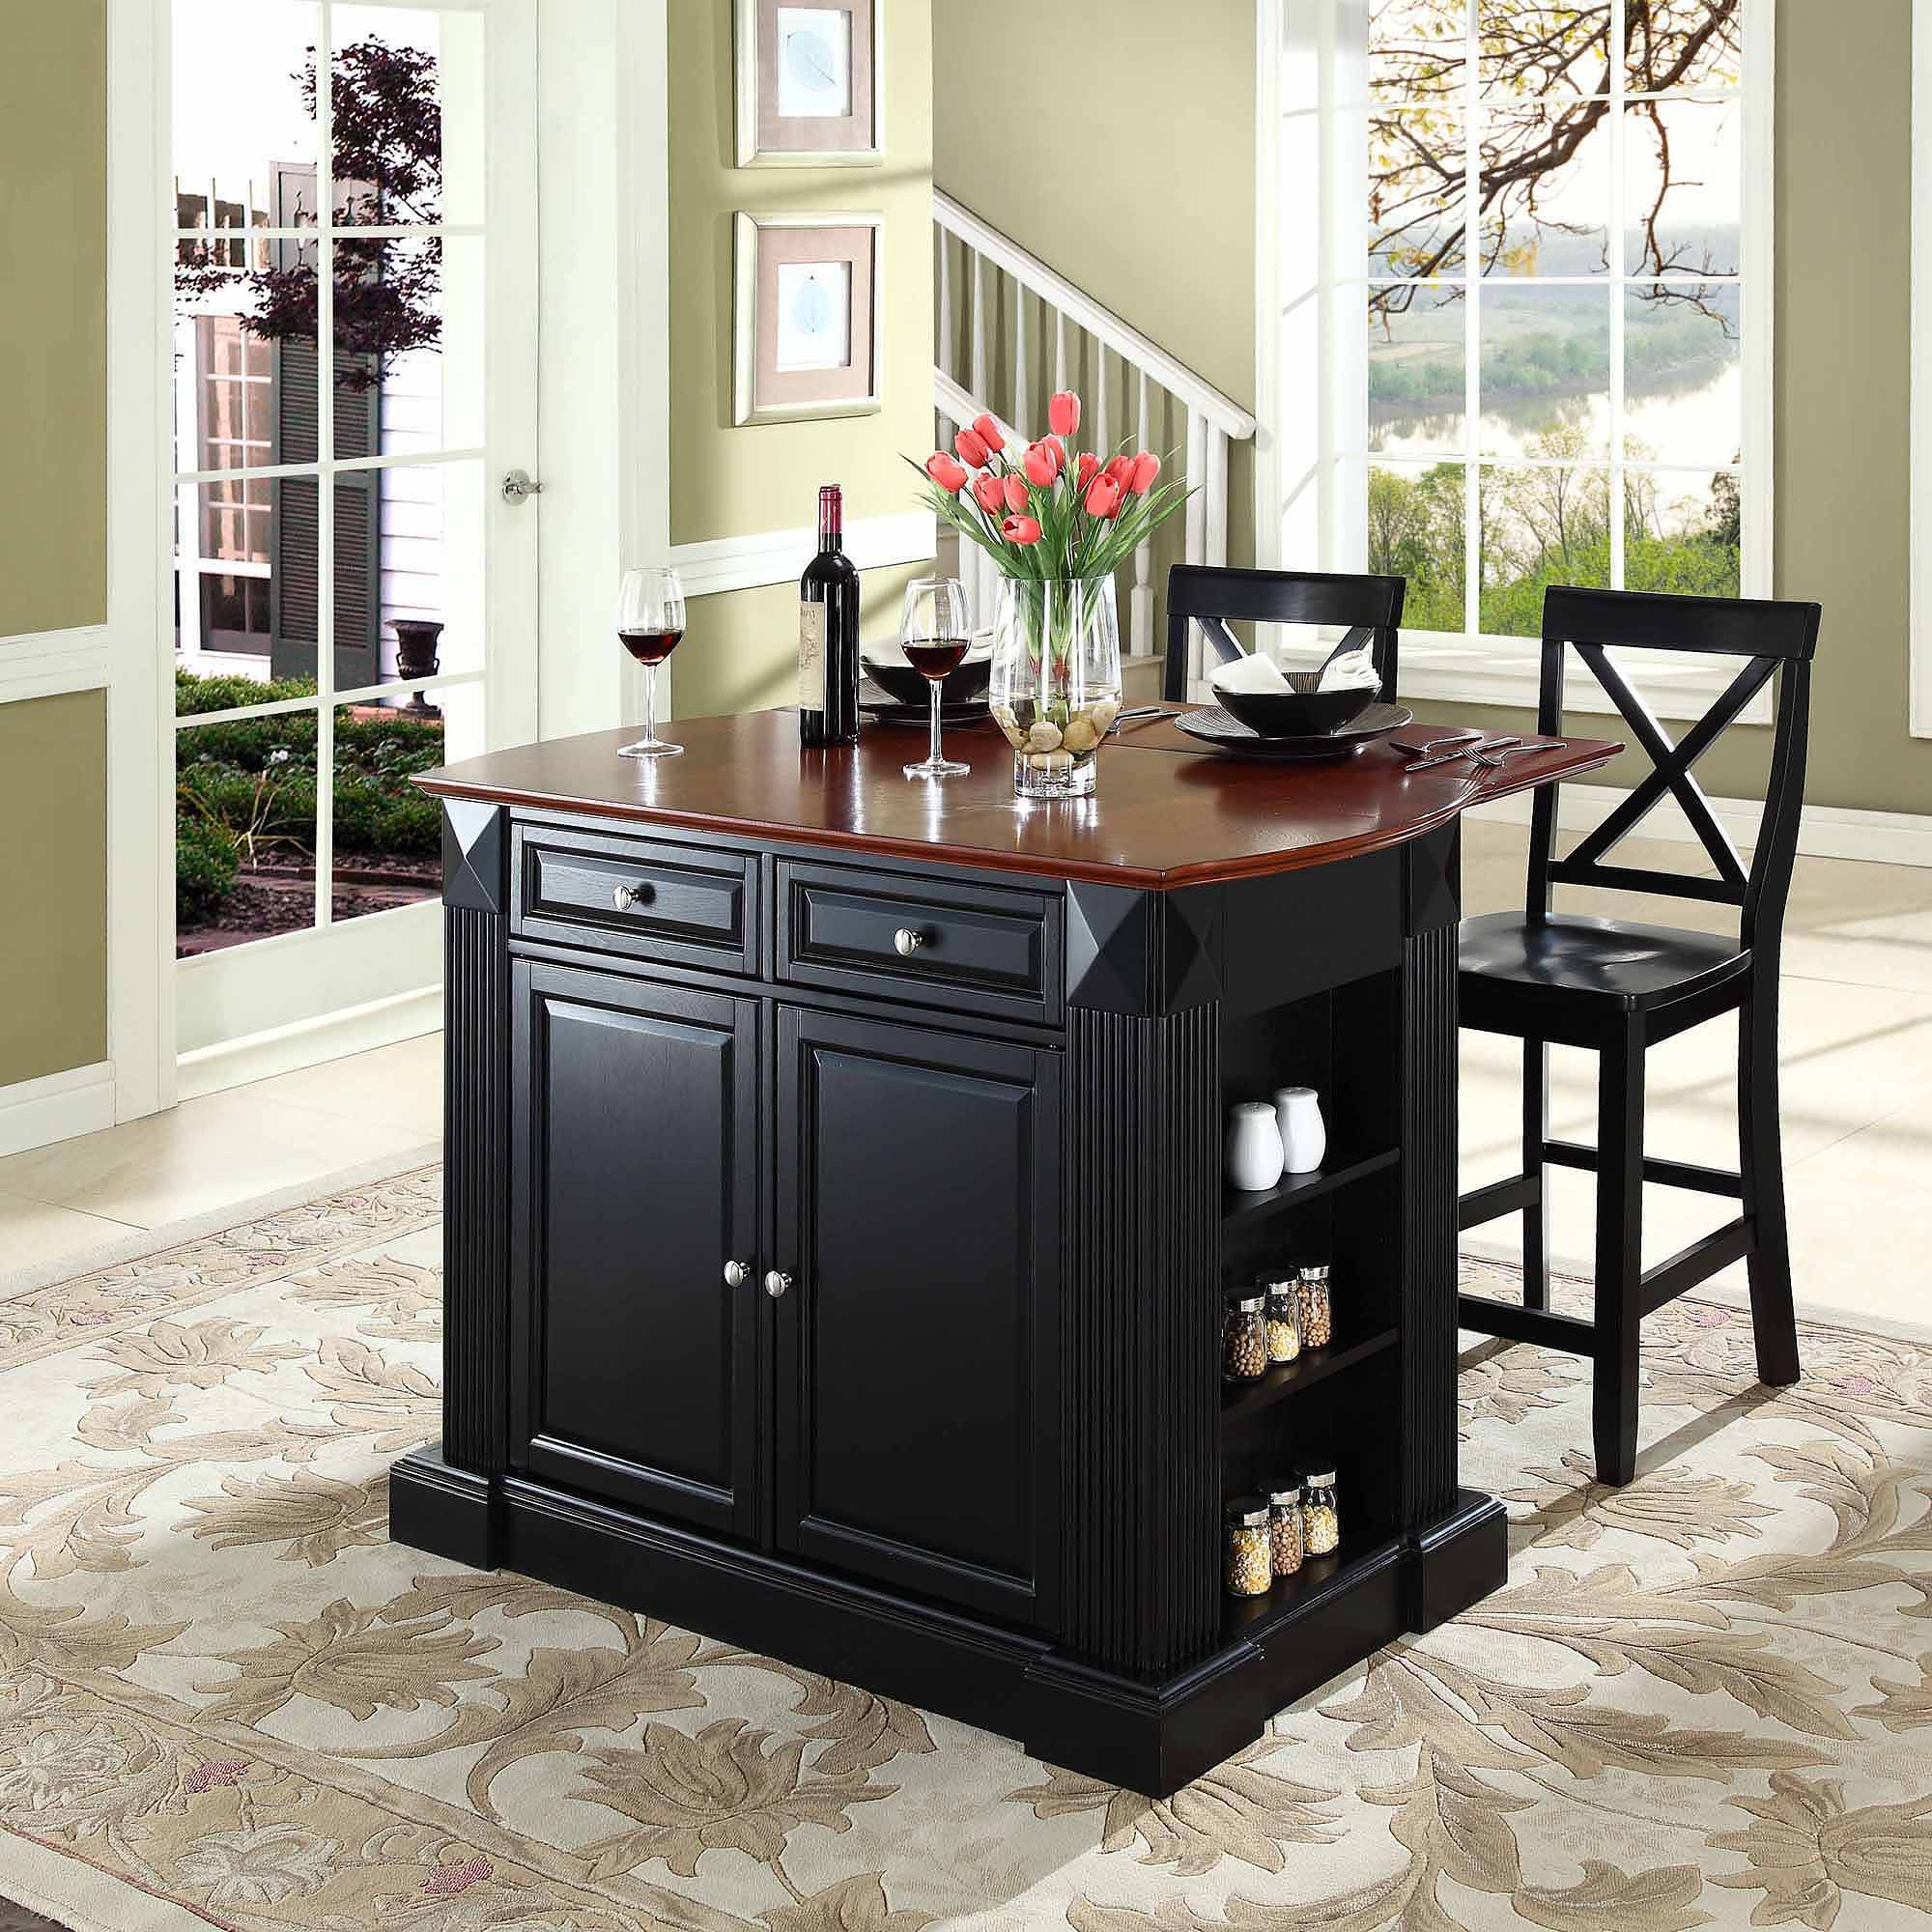 "Crosley Furniture Drop Leaf Breakfast Bar Top Kitchen Island with 24"" X-Back Stools"